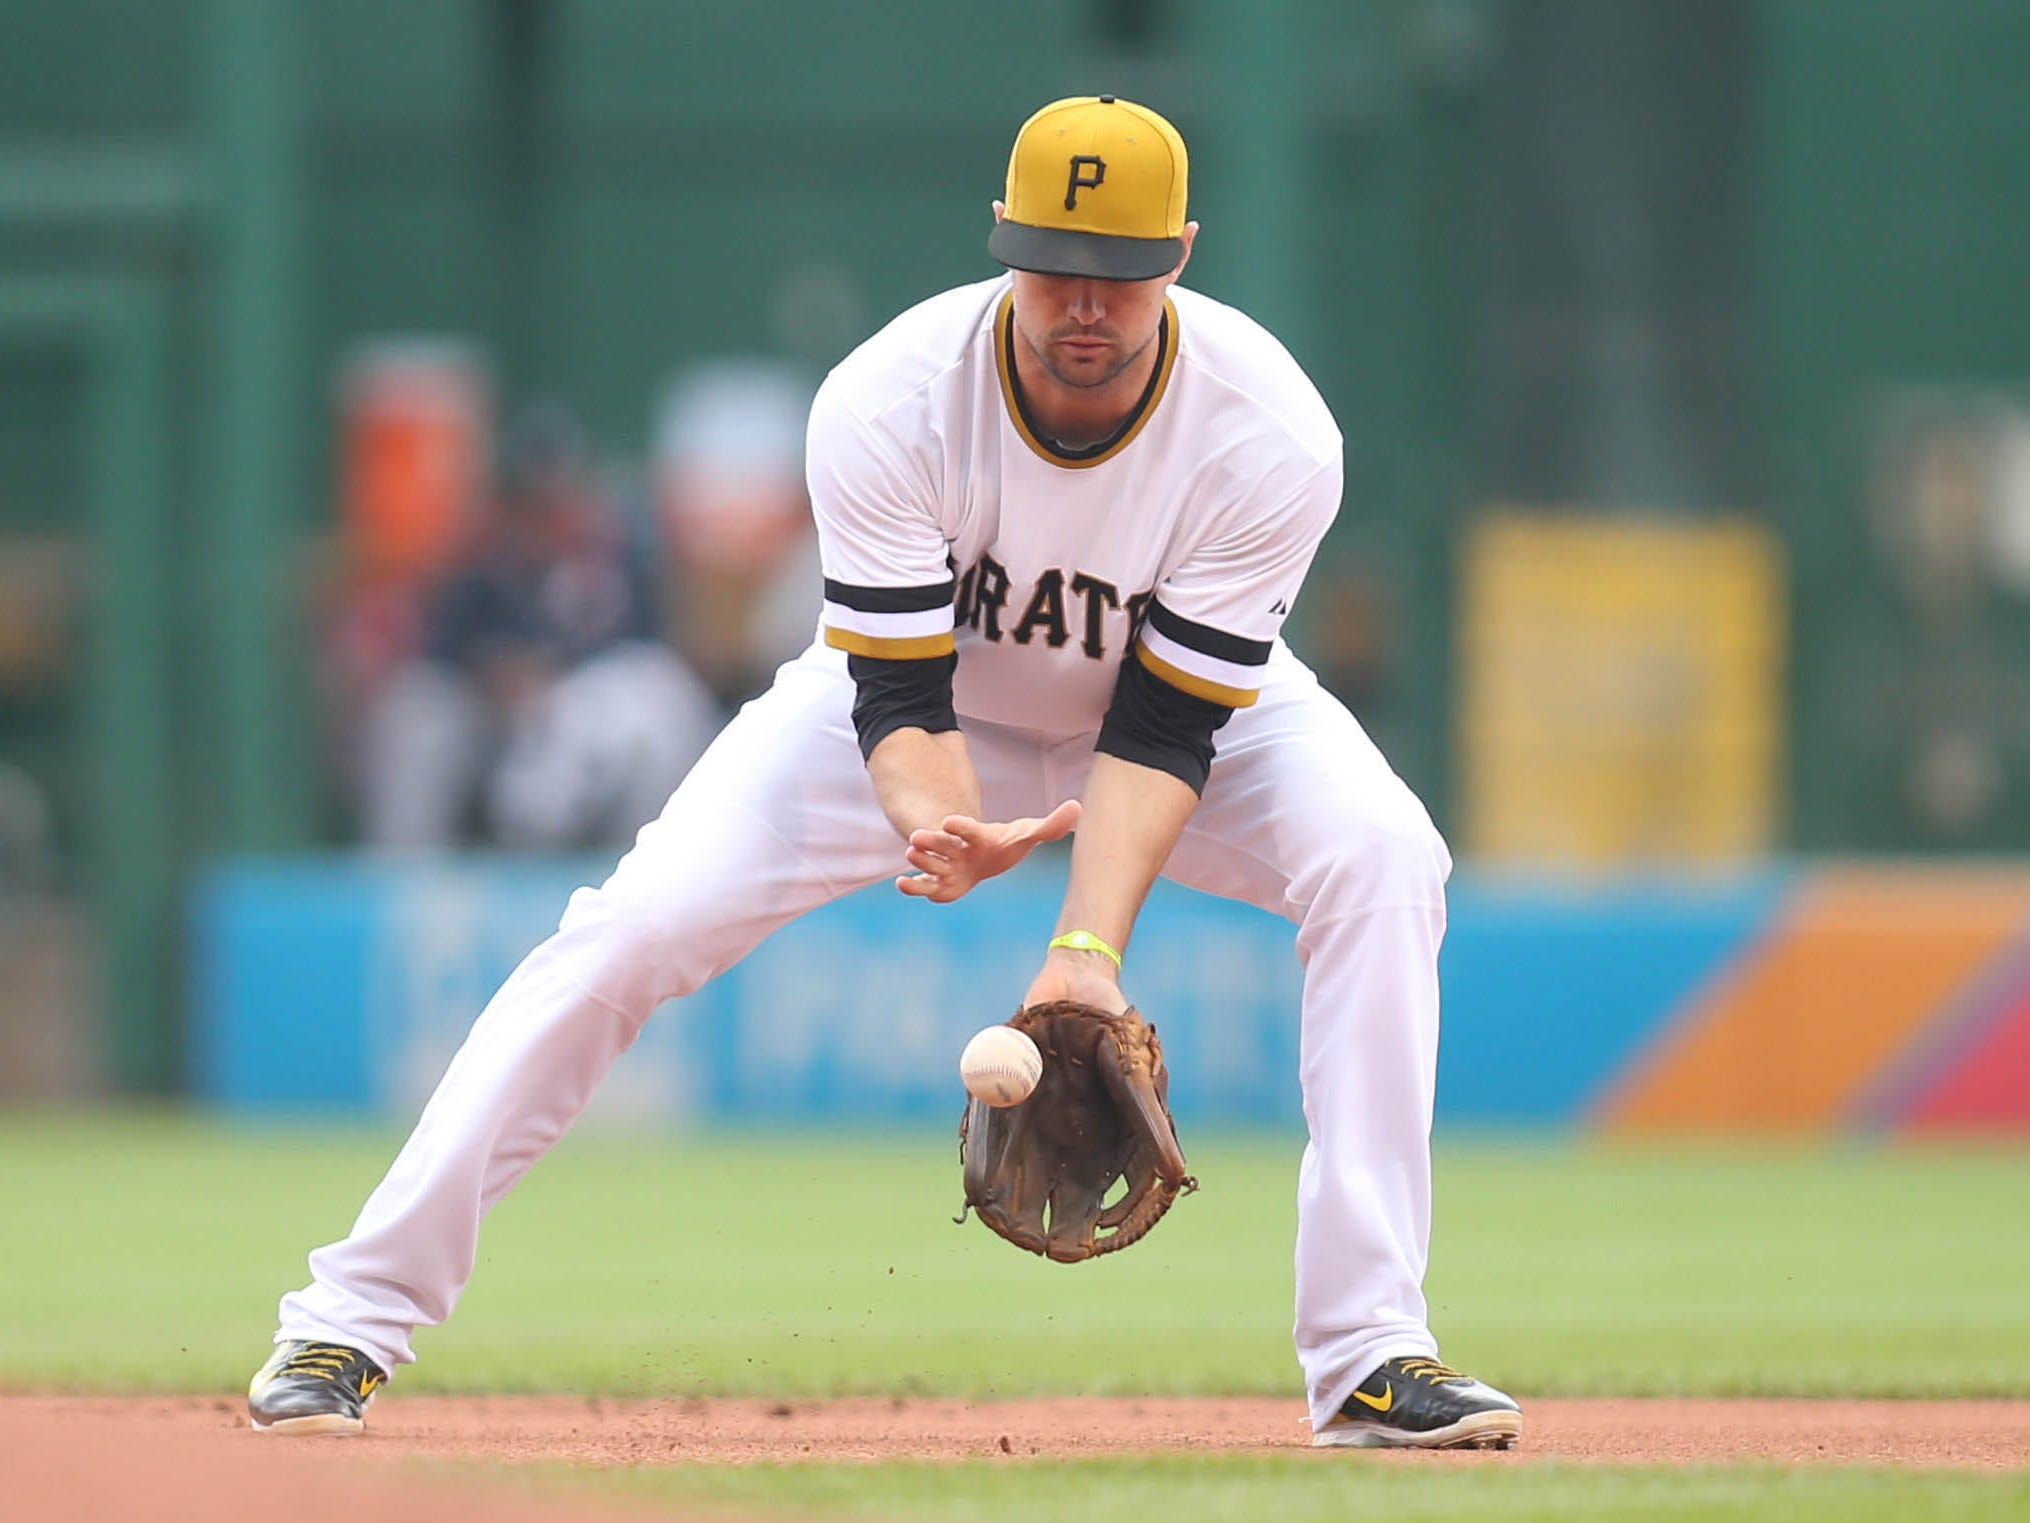 Pittsburgh Pirates shortstop Jordy Mercer fields a ground ball against the Atlanta Braves at PNC Park in 2015.